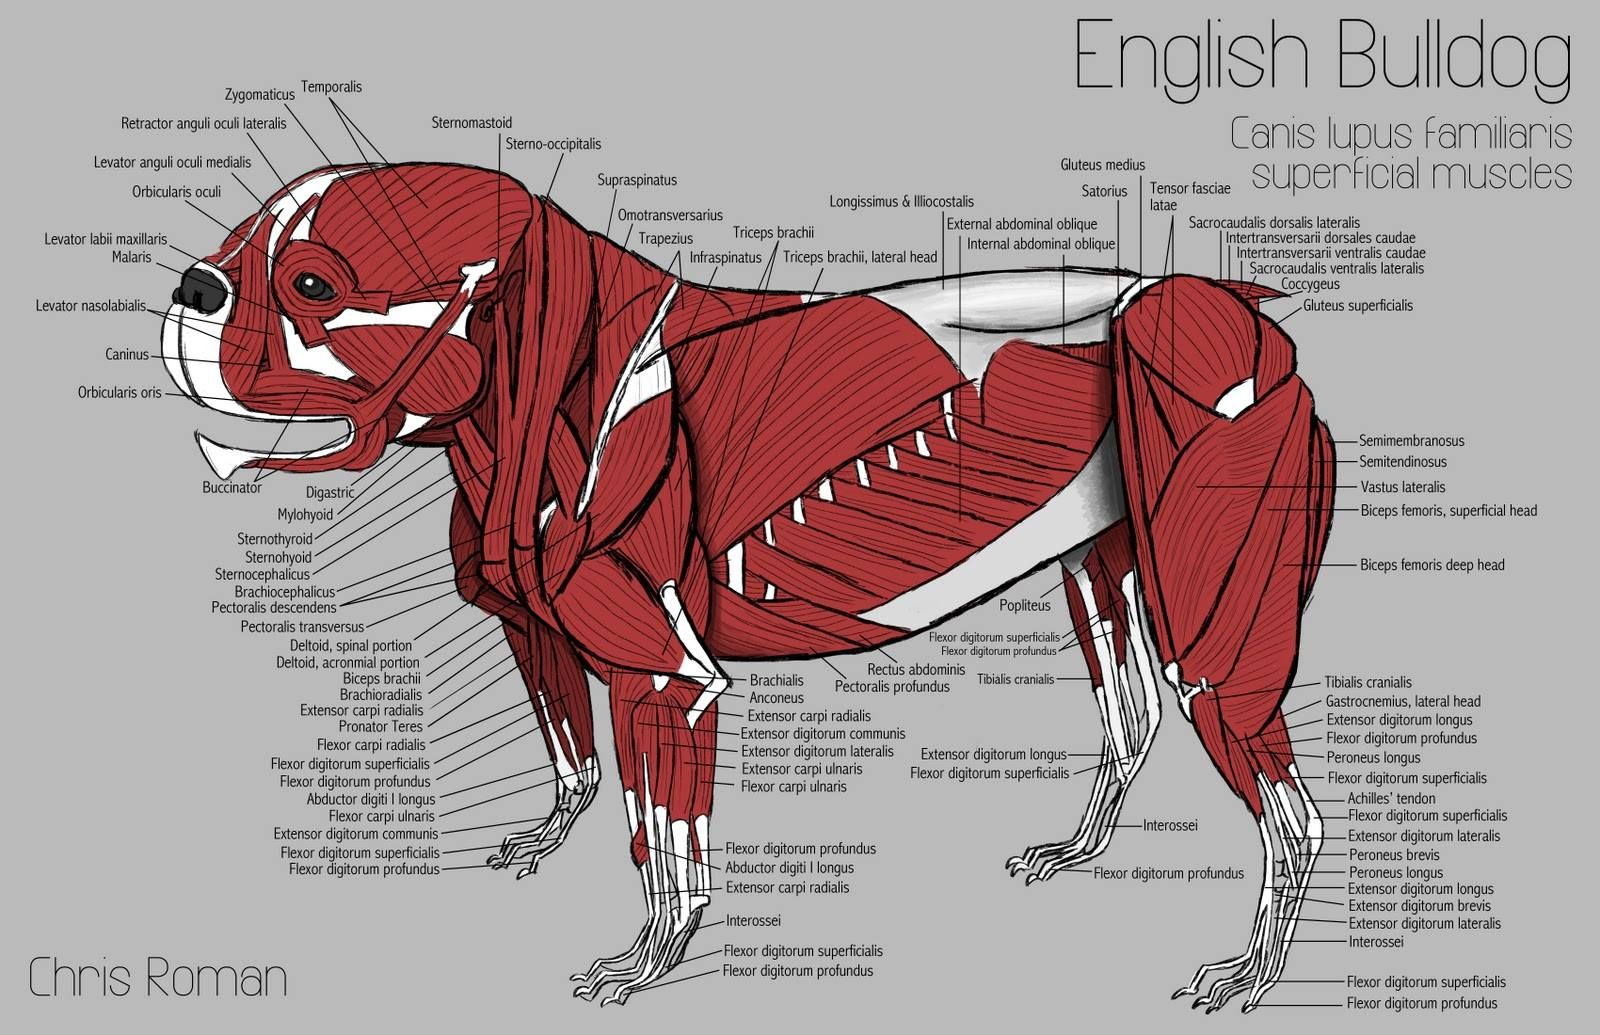 the superficial muscles of the english bulldog  [ 1600 x 1035 Pixel ]